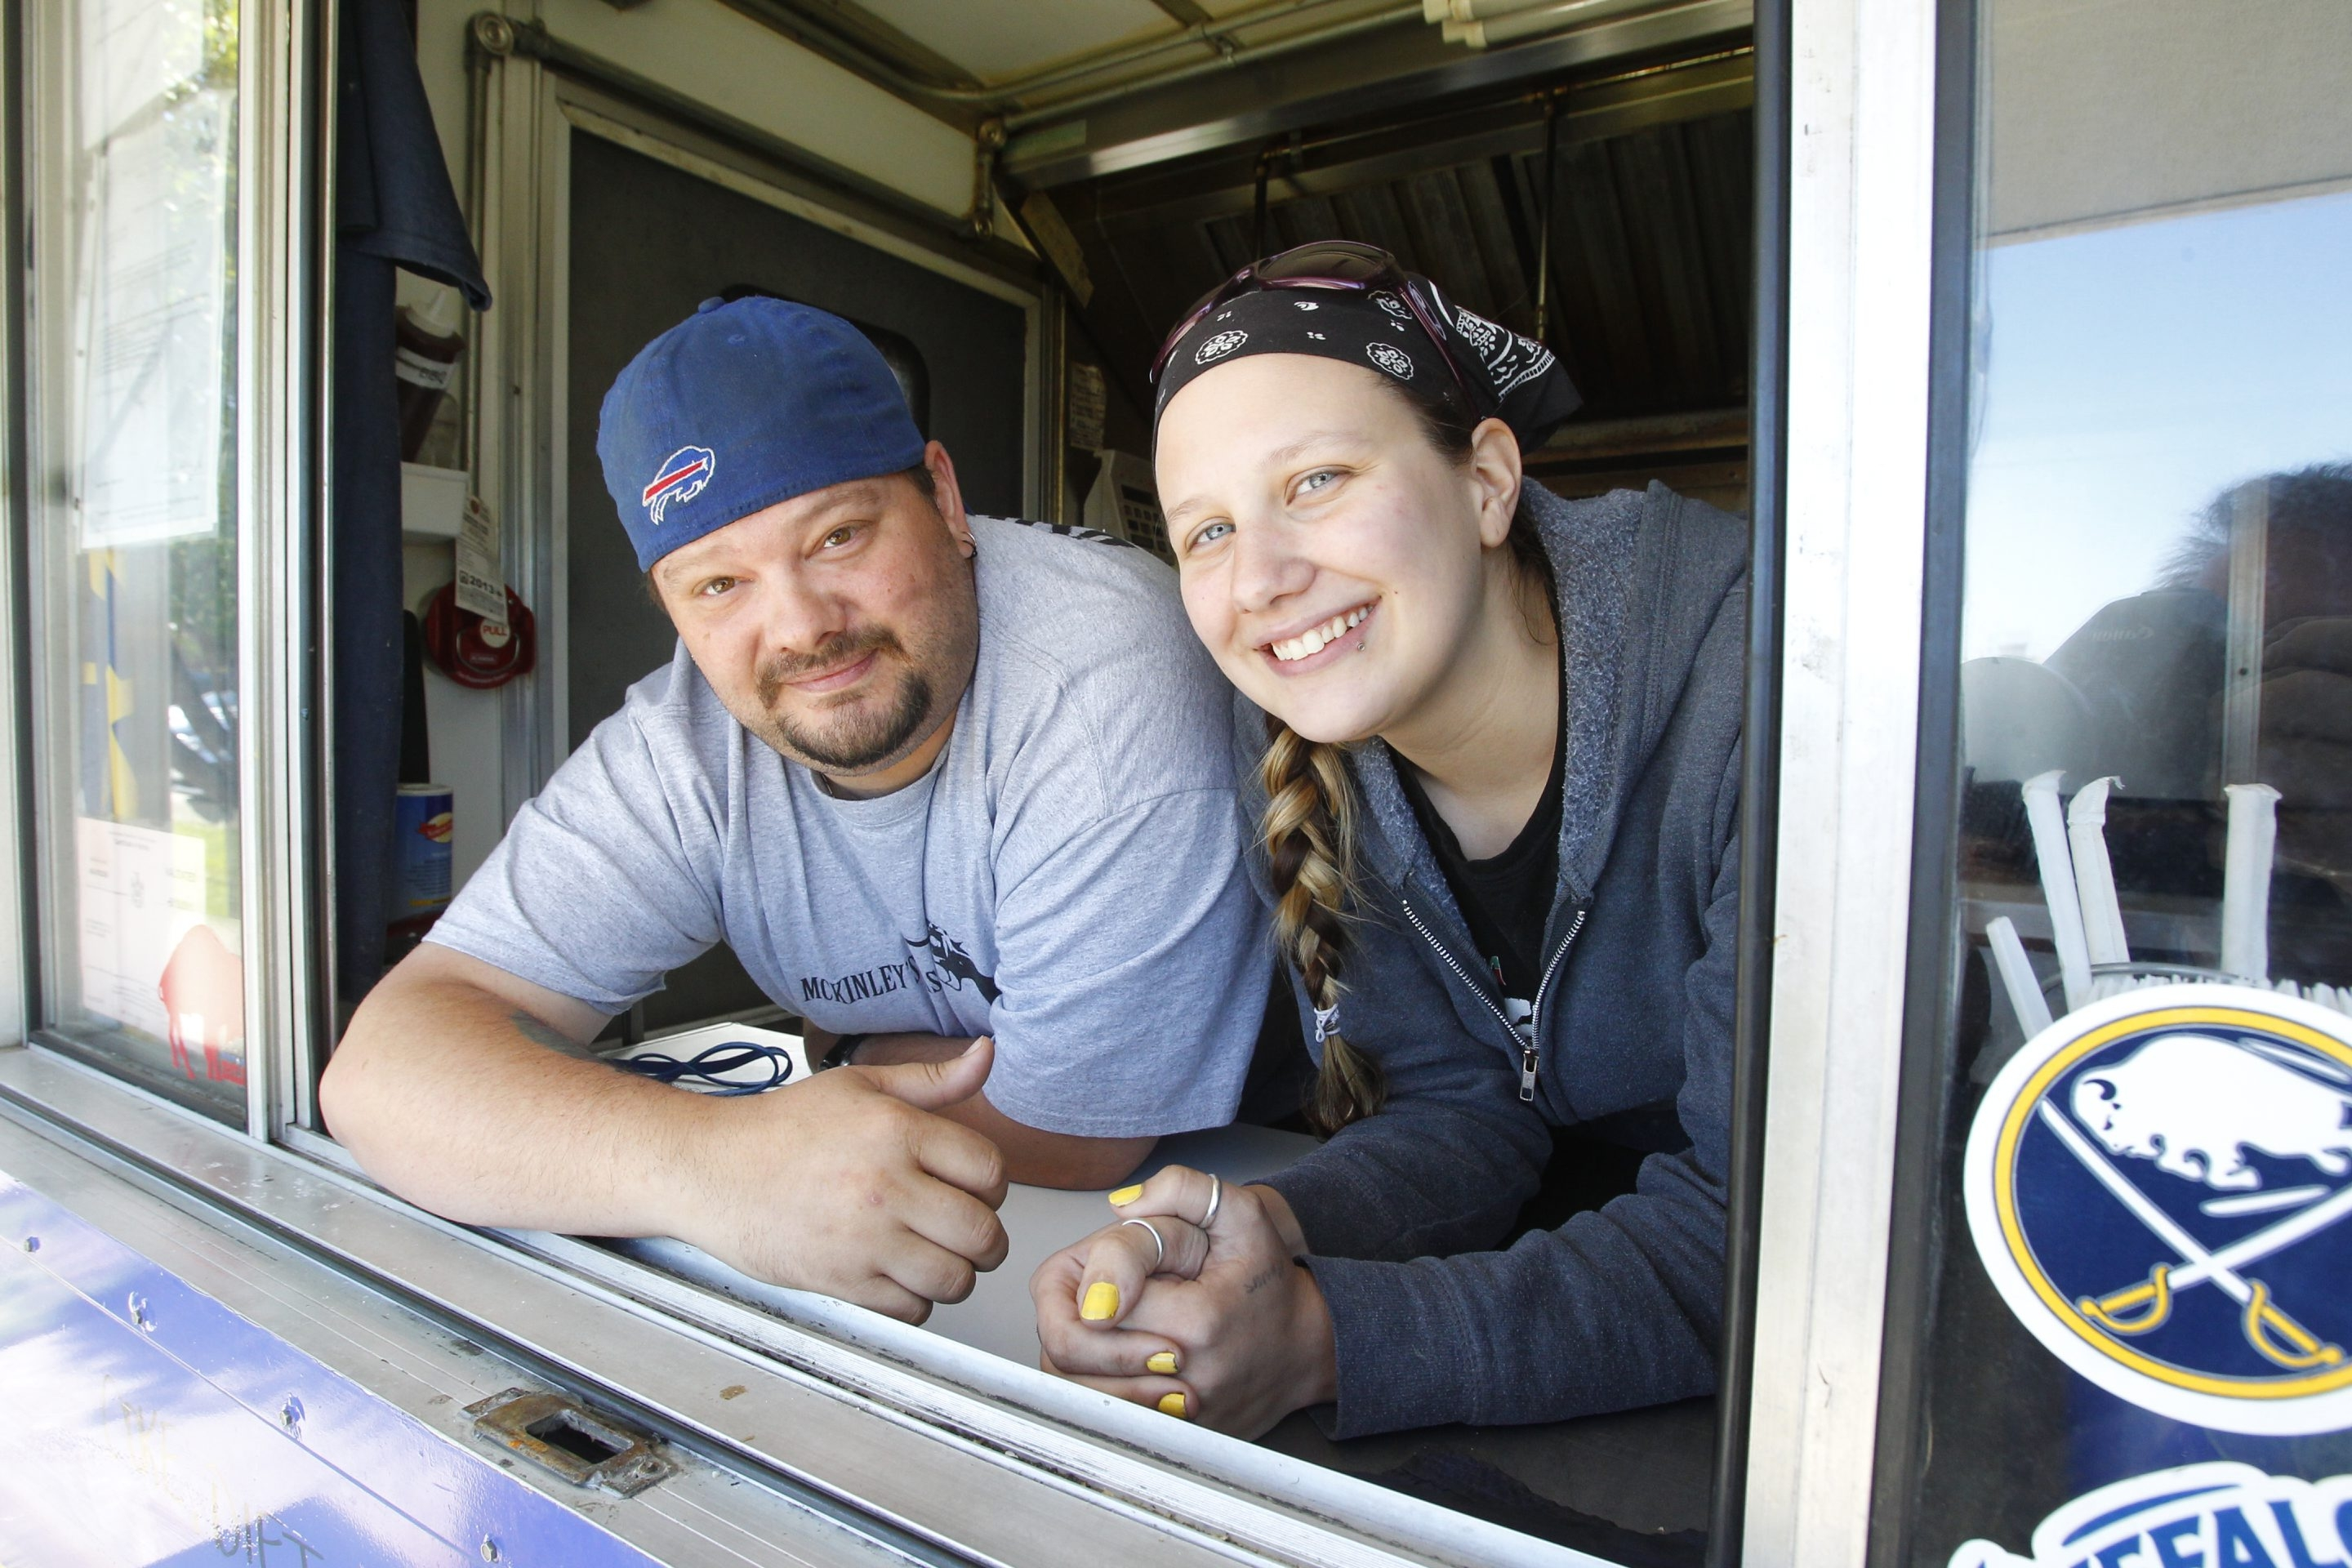 Christopher and Valerie Taylor are pictured outside their food truck on Monday, June 3, 2013.  (Photo by Harry Scull Jr. / Buffalo News(